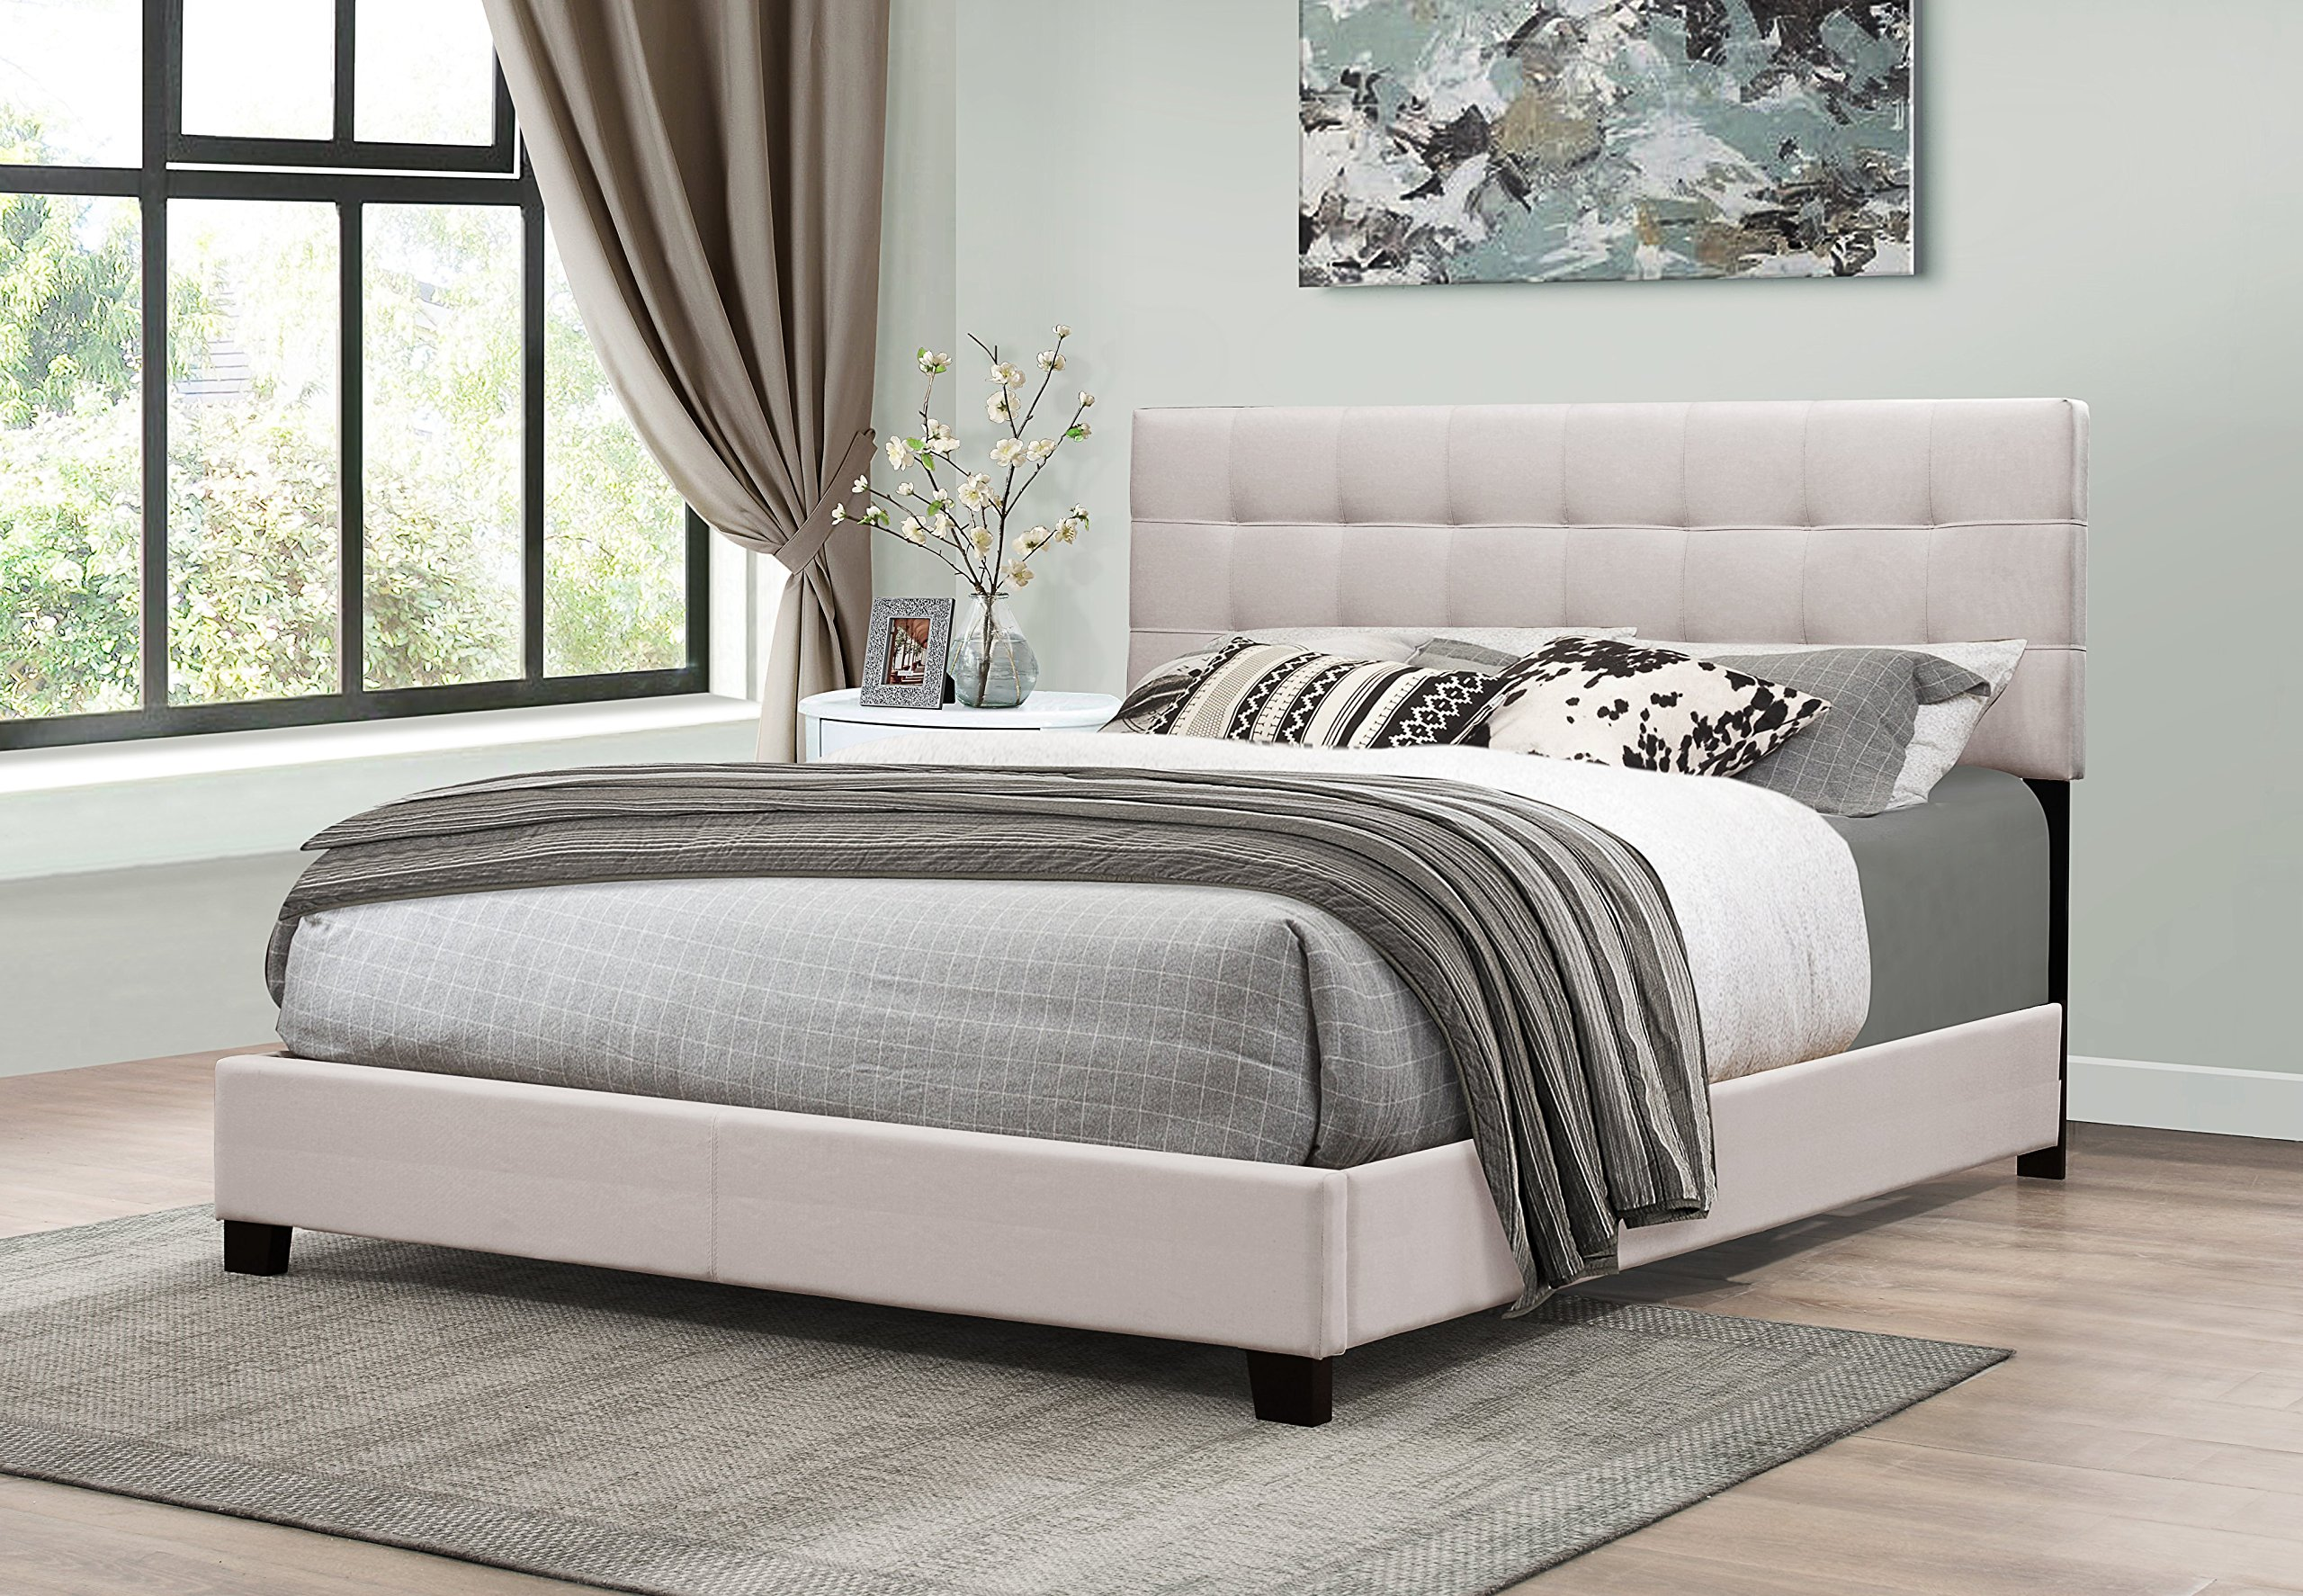 Furniture World B0261-F-H Henri Classic Tufted Upholstered Headboard, Full, Cream (Footboard and Side Rails Sold Separately)